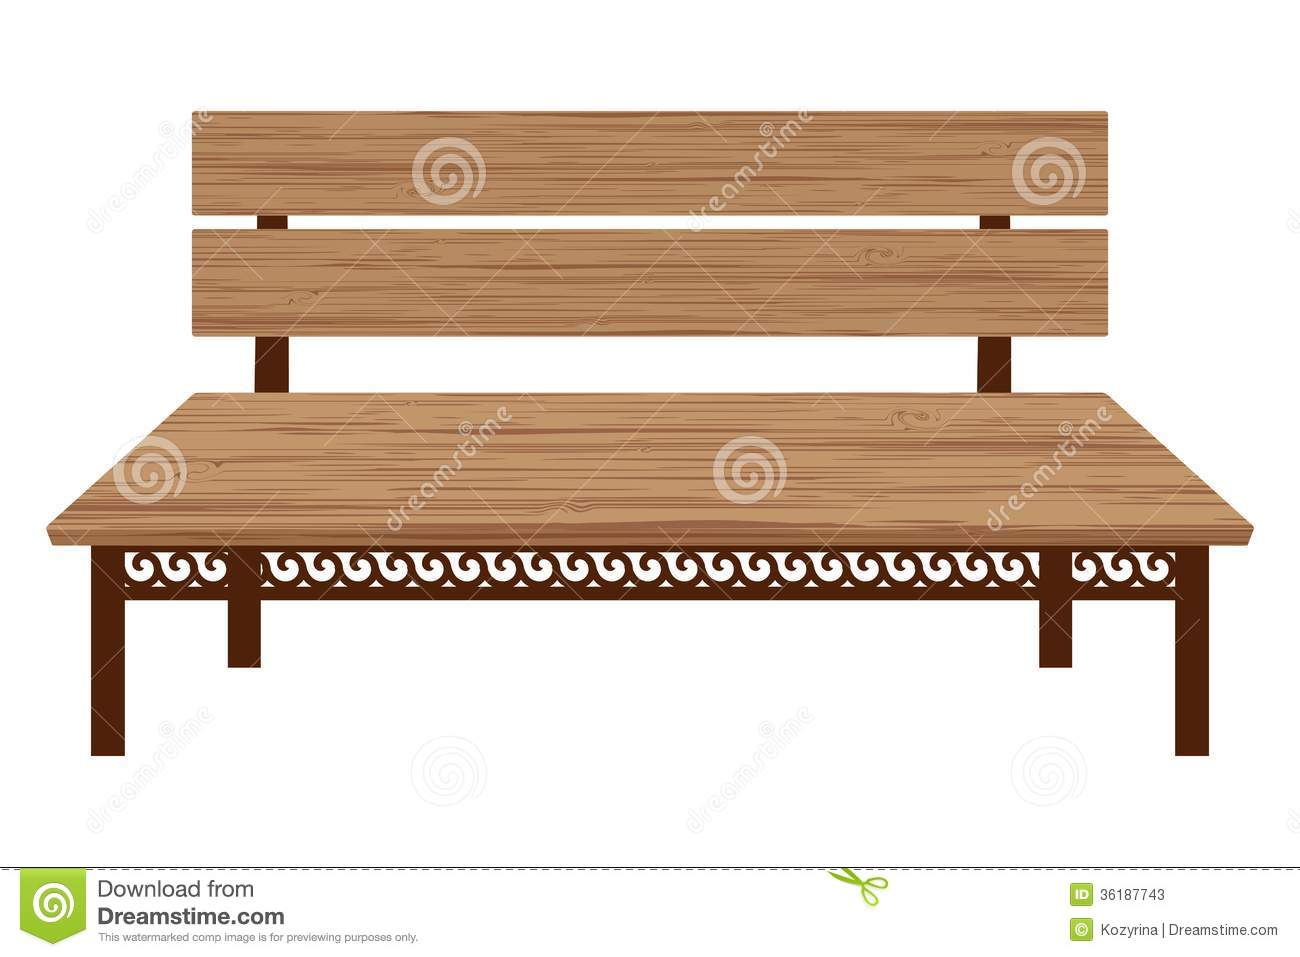 Wooden bench stock vector. Image of antique, forge ...